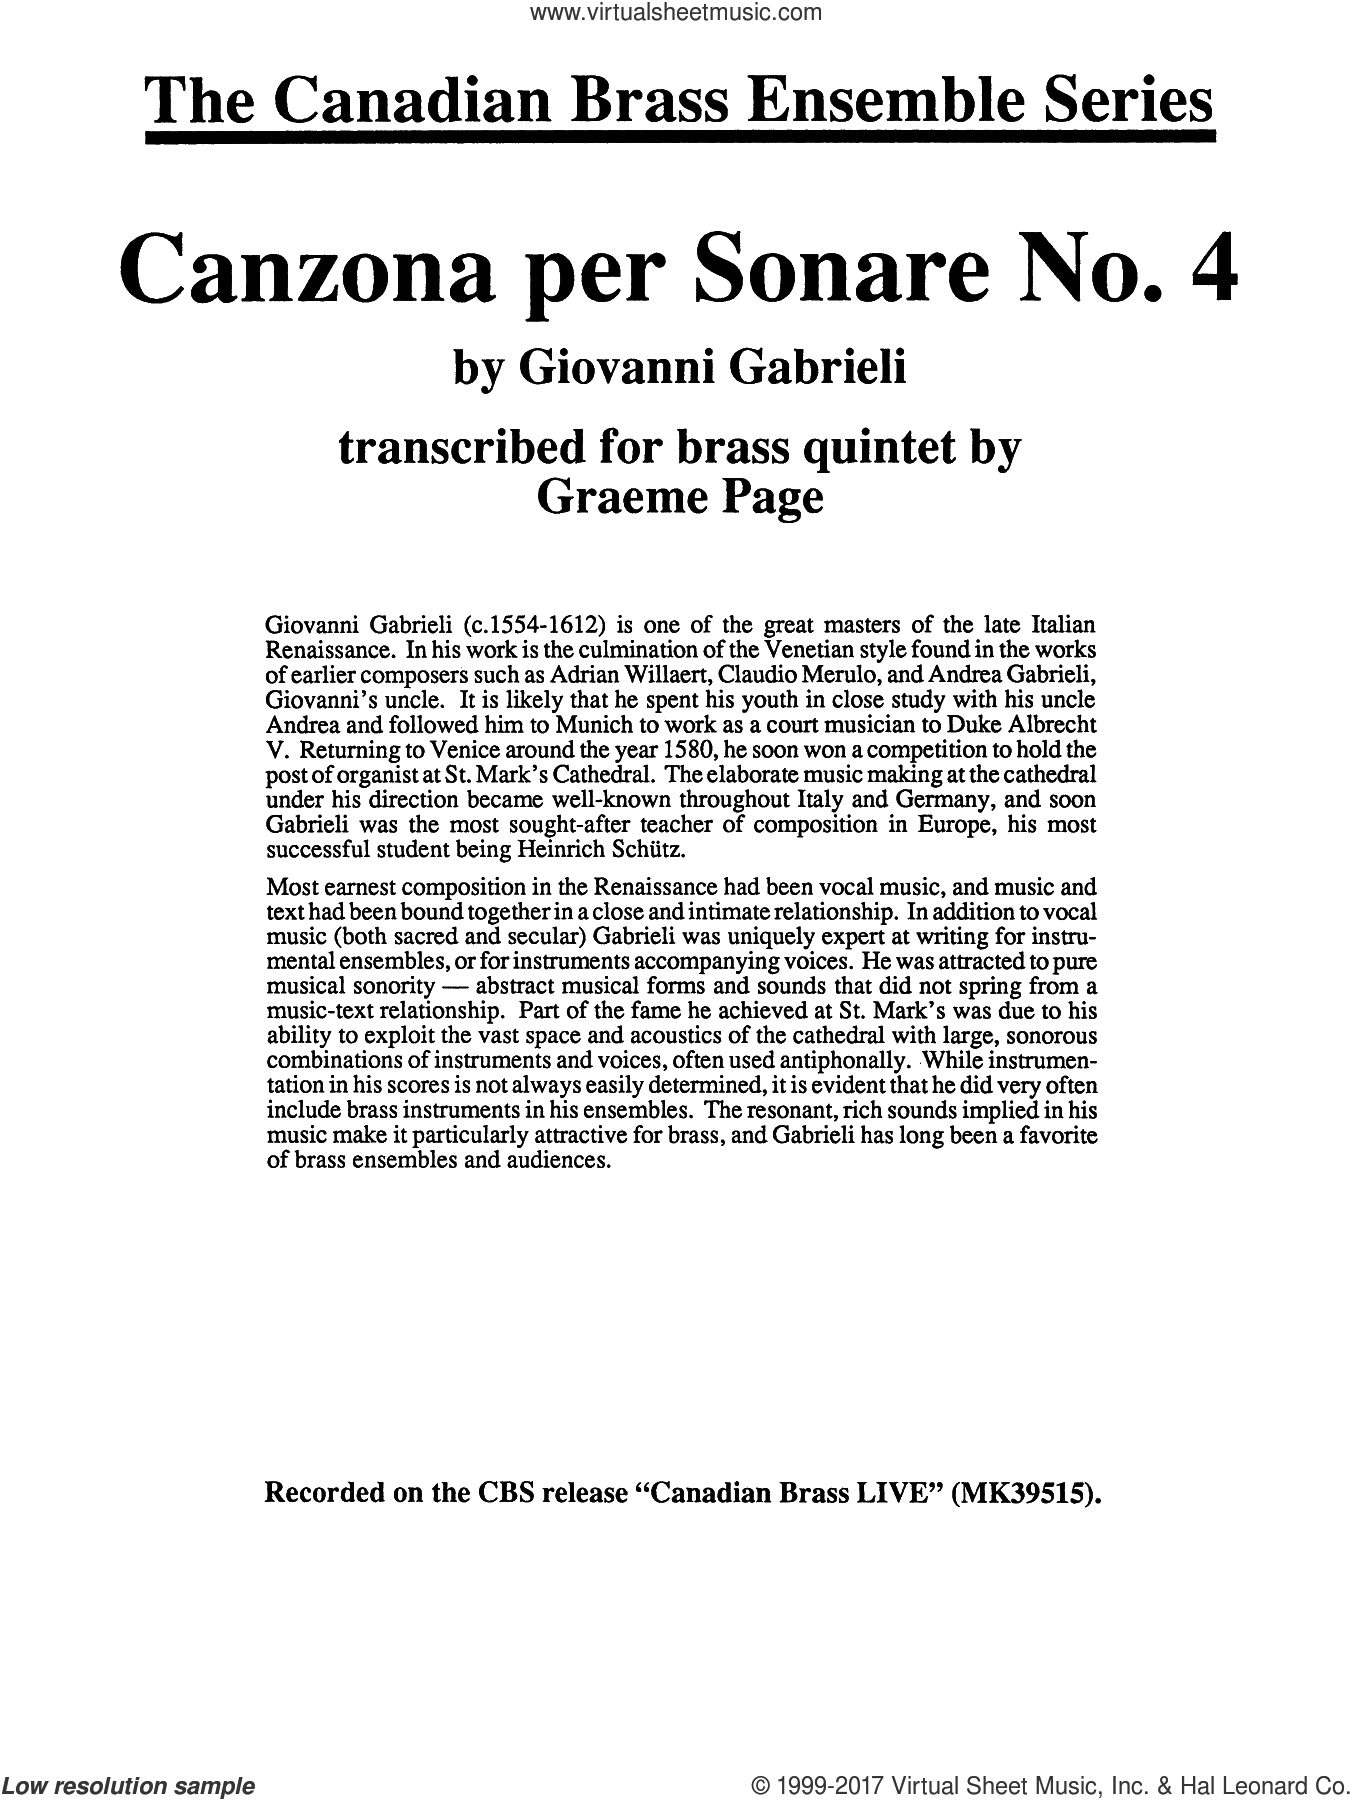 Canzona Per Sonare No. 4 (COMPLETE) sheet music for brass quintet by G. Gabrieli and Graeme Page, classical score, intermediate skill level